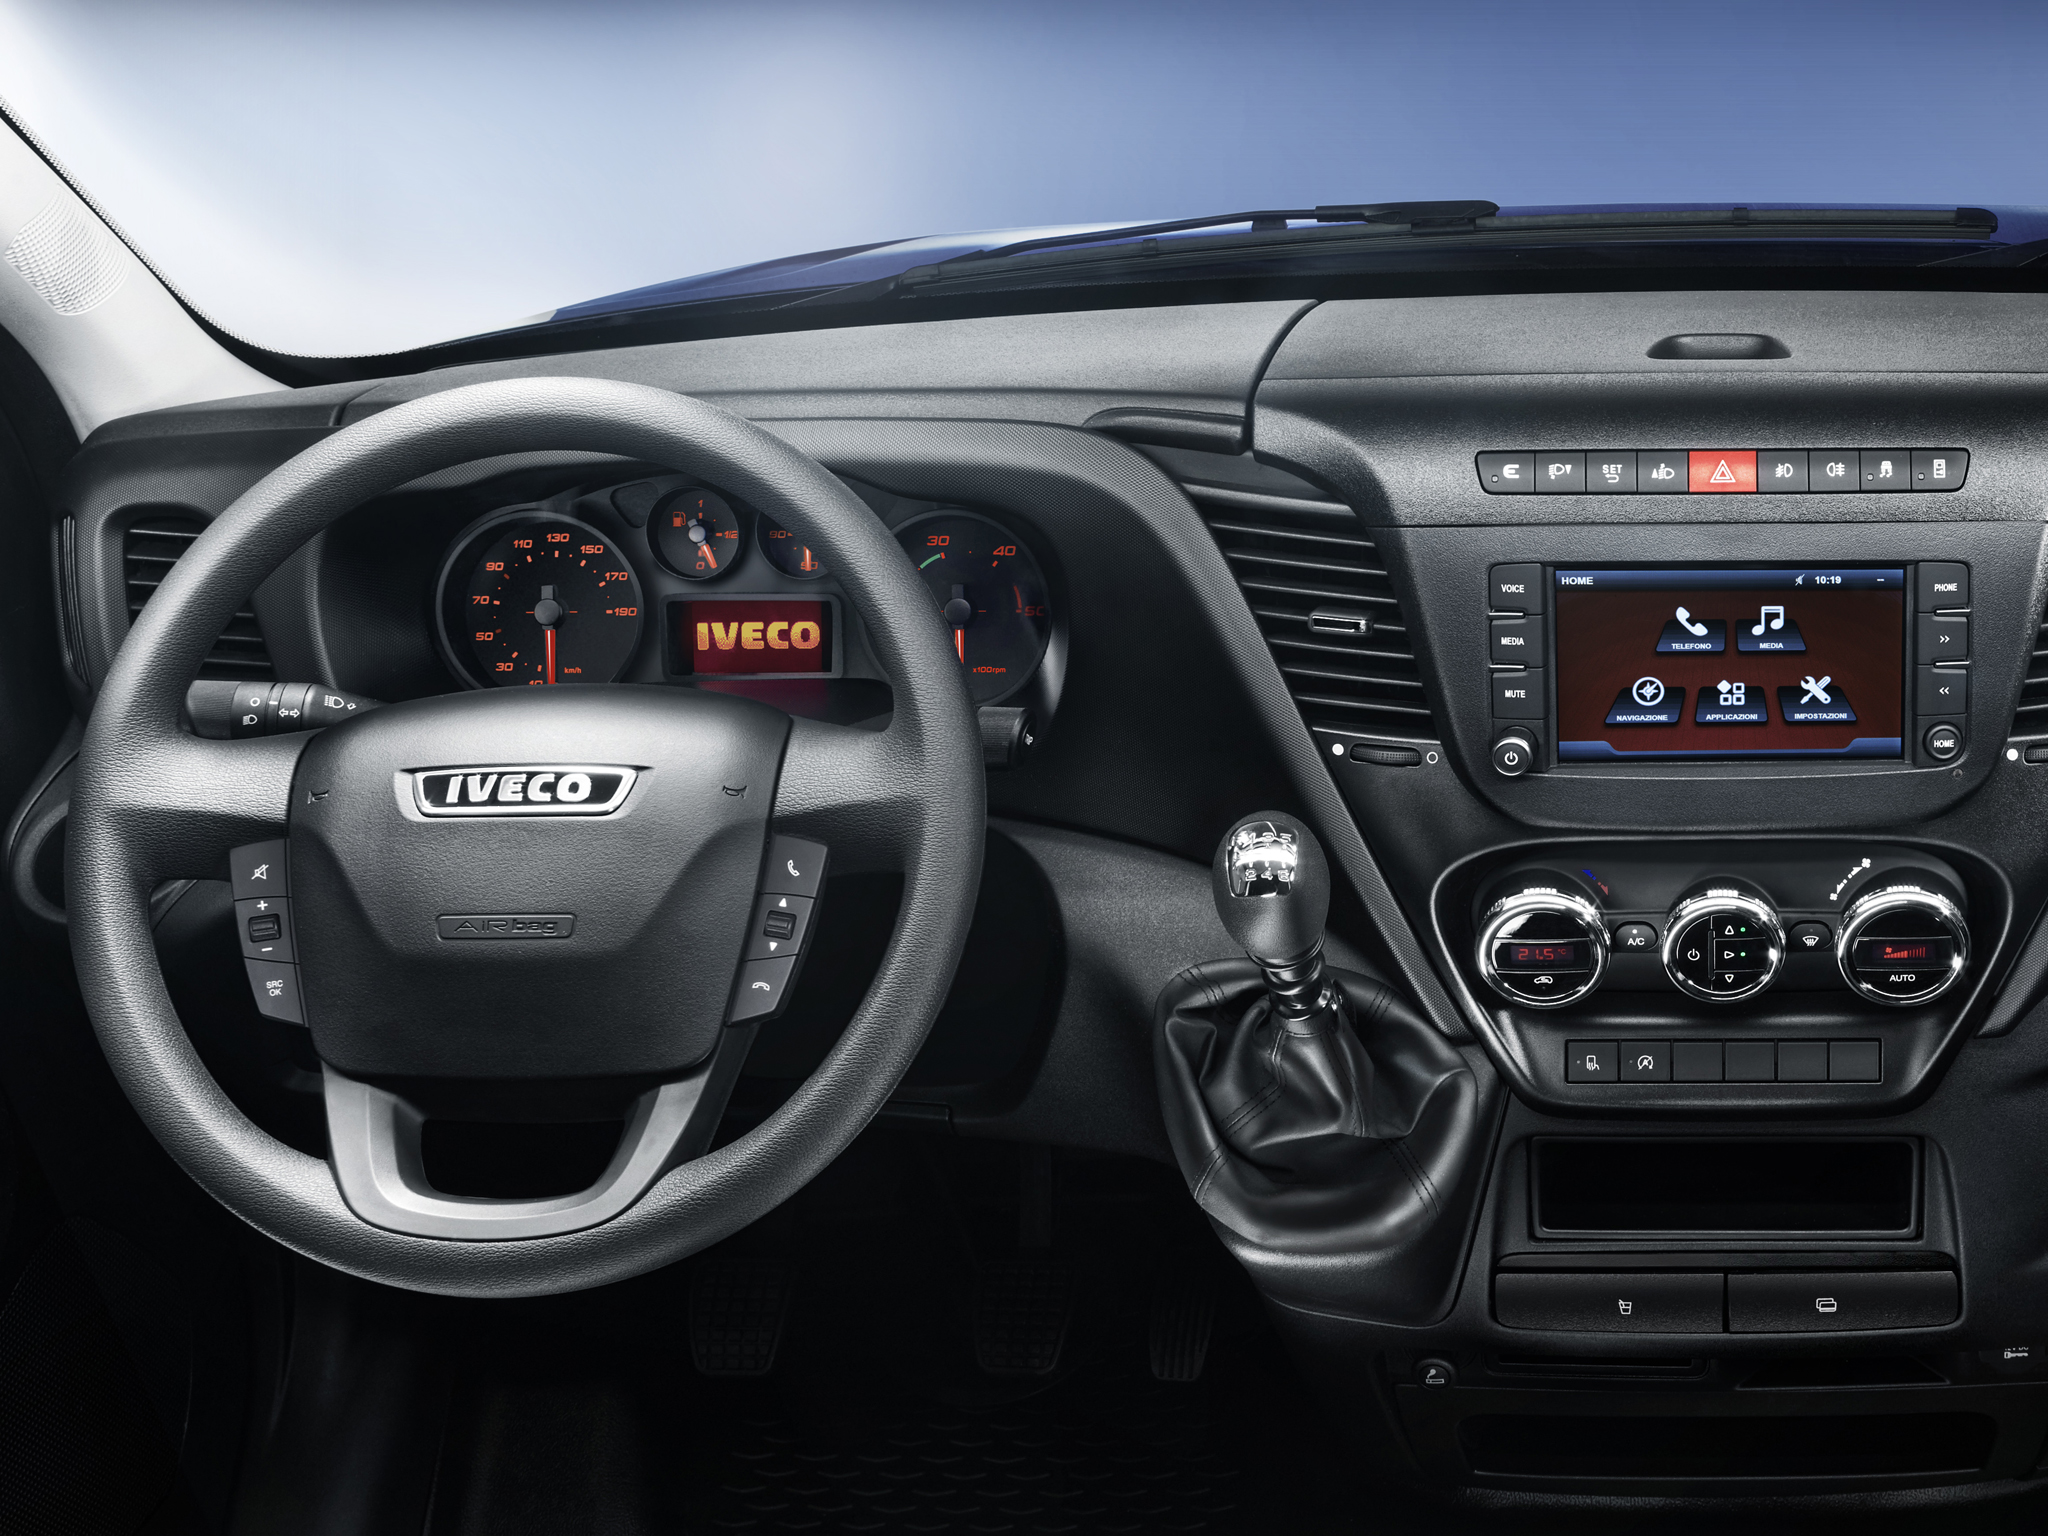 2014 - [Iveco] Daily - Page 3 Iveco-reveals-the-new-daily-for-2014-say-it-s-80-redesigned-photo-gallery_9